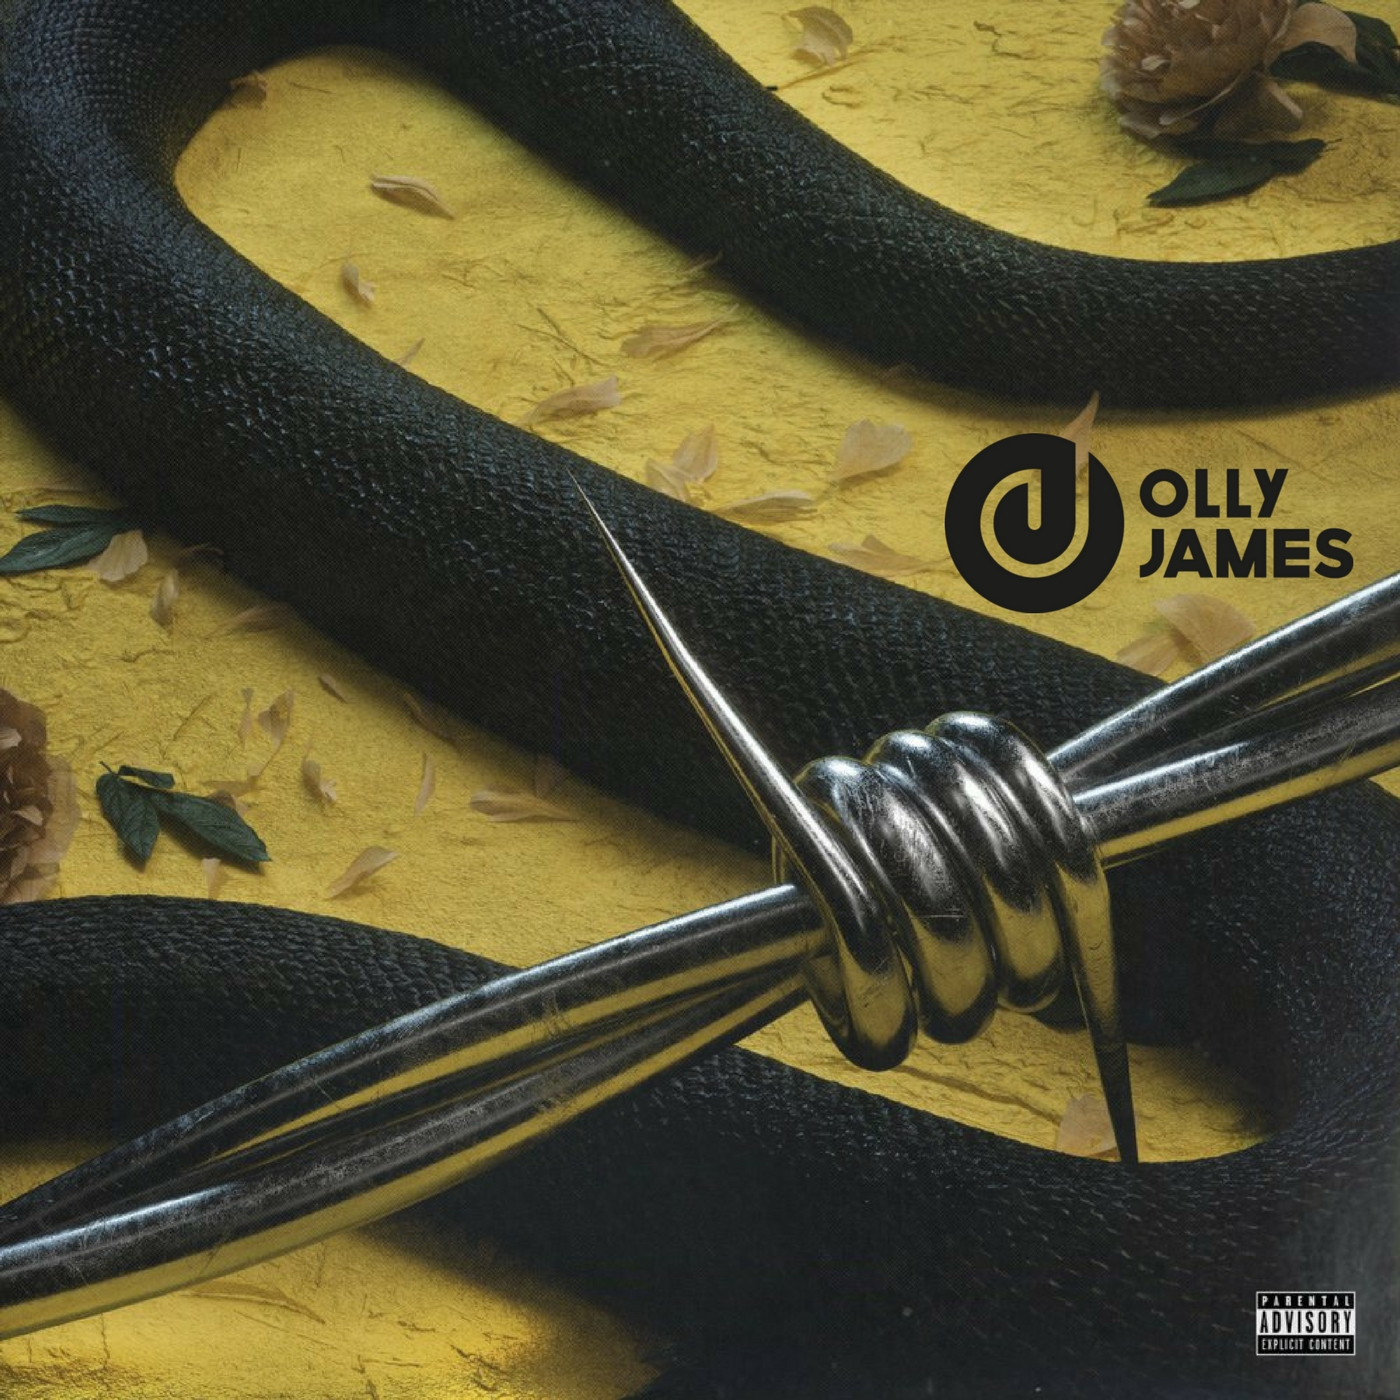 Post Malone Hit This Hard: Rockstar (Olly James Clubmix) By Post Malone Feat 21